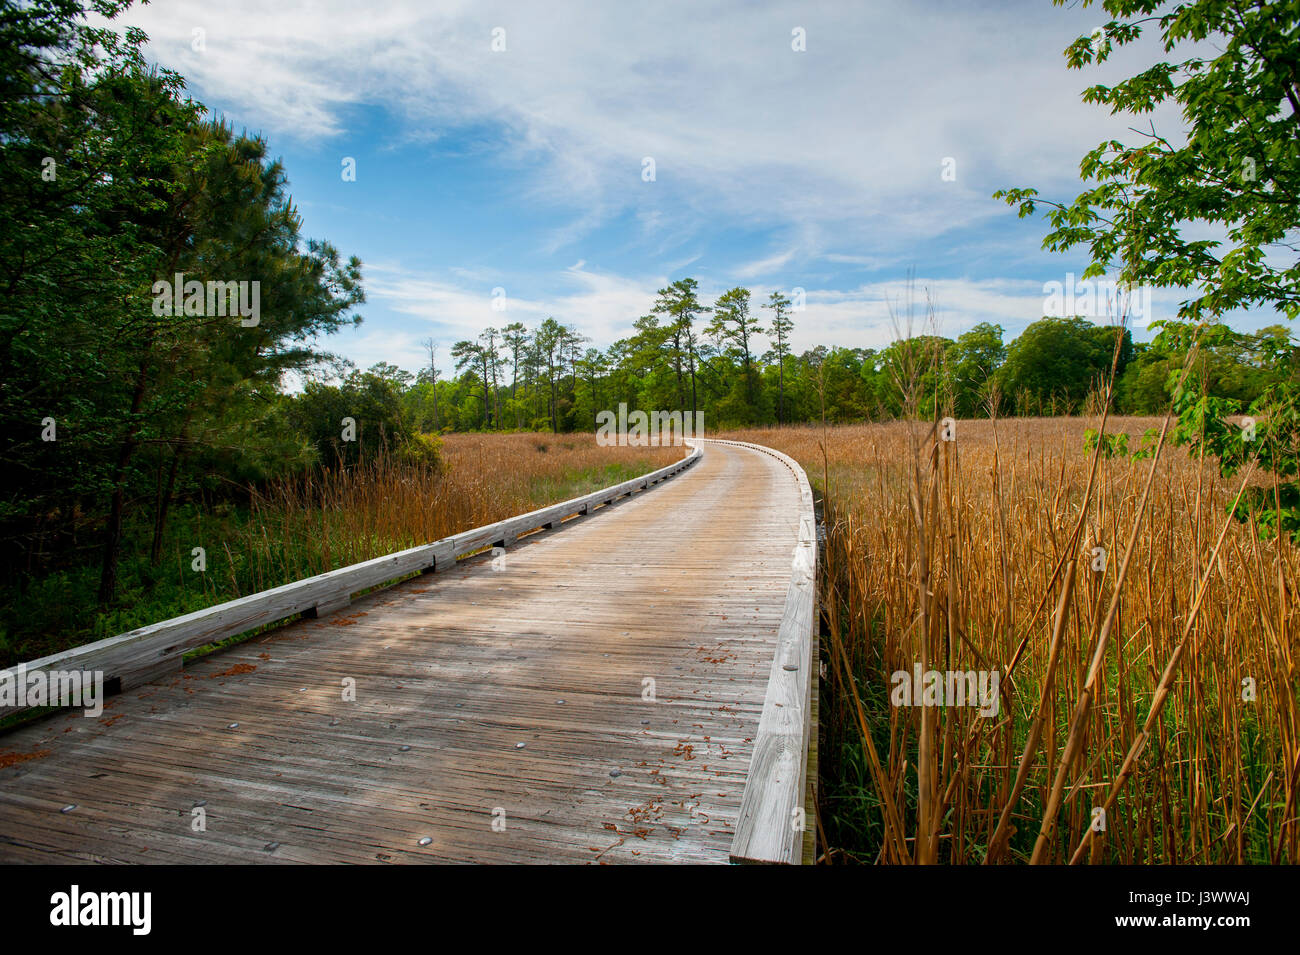 usa-virginia-va-single-lane-wooden-bridge-on-jamestown-island-along-J3WWAJ.jpg